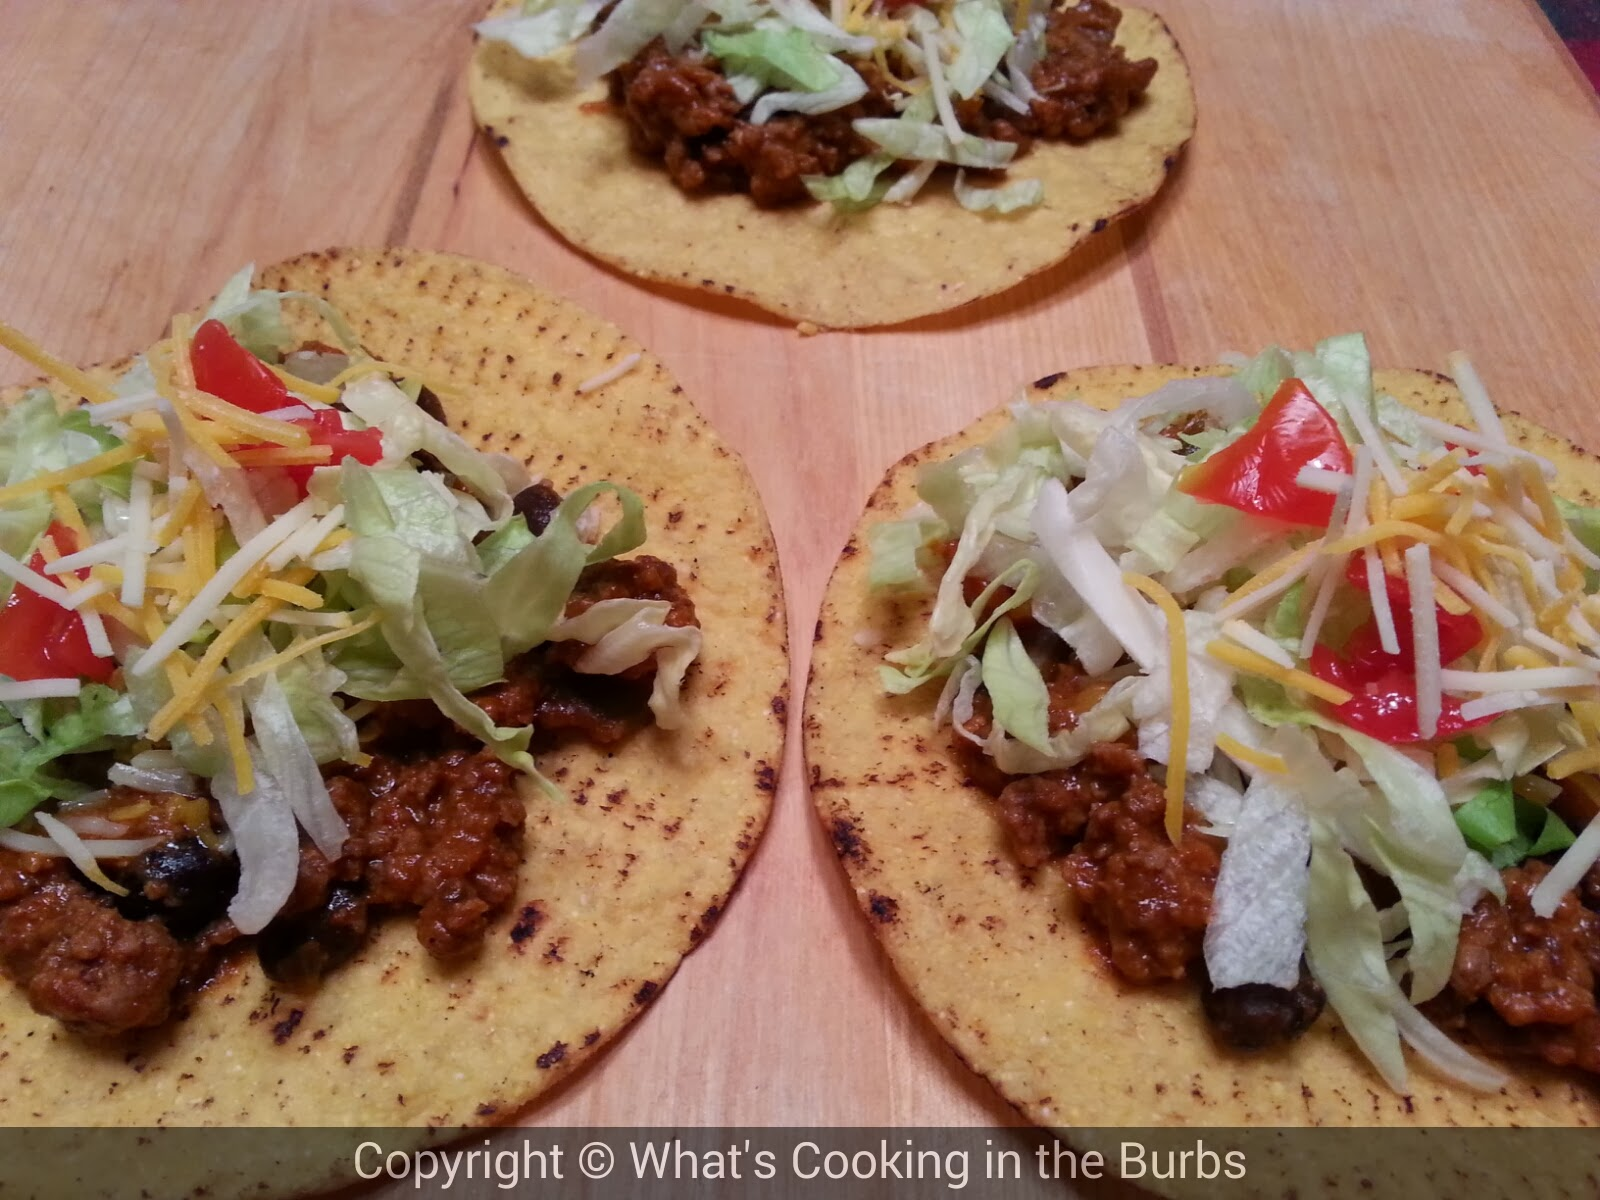 What's Cooking in the Burbs: Cheesy Beef Tostadas